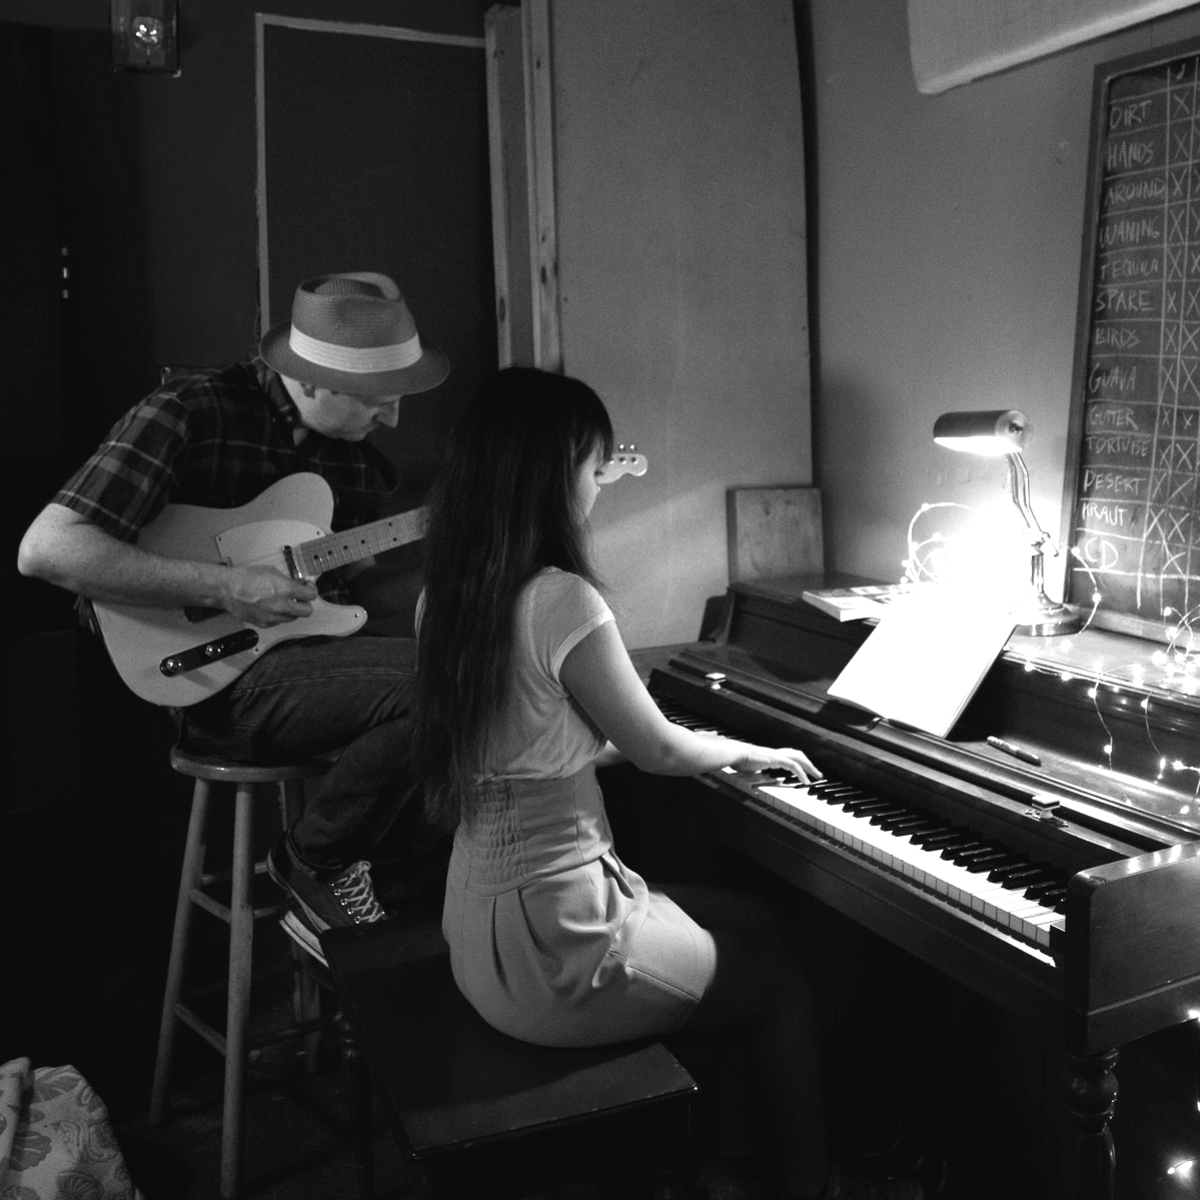 Songwriting course image